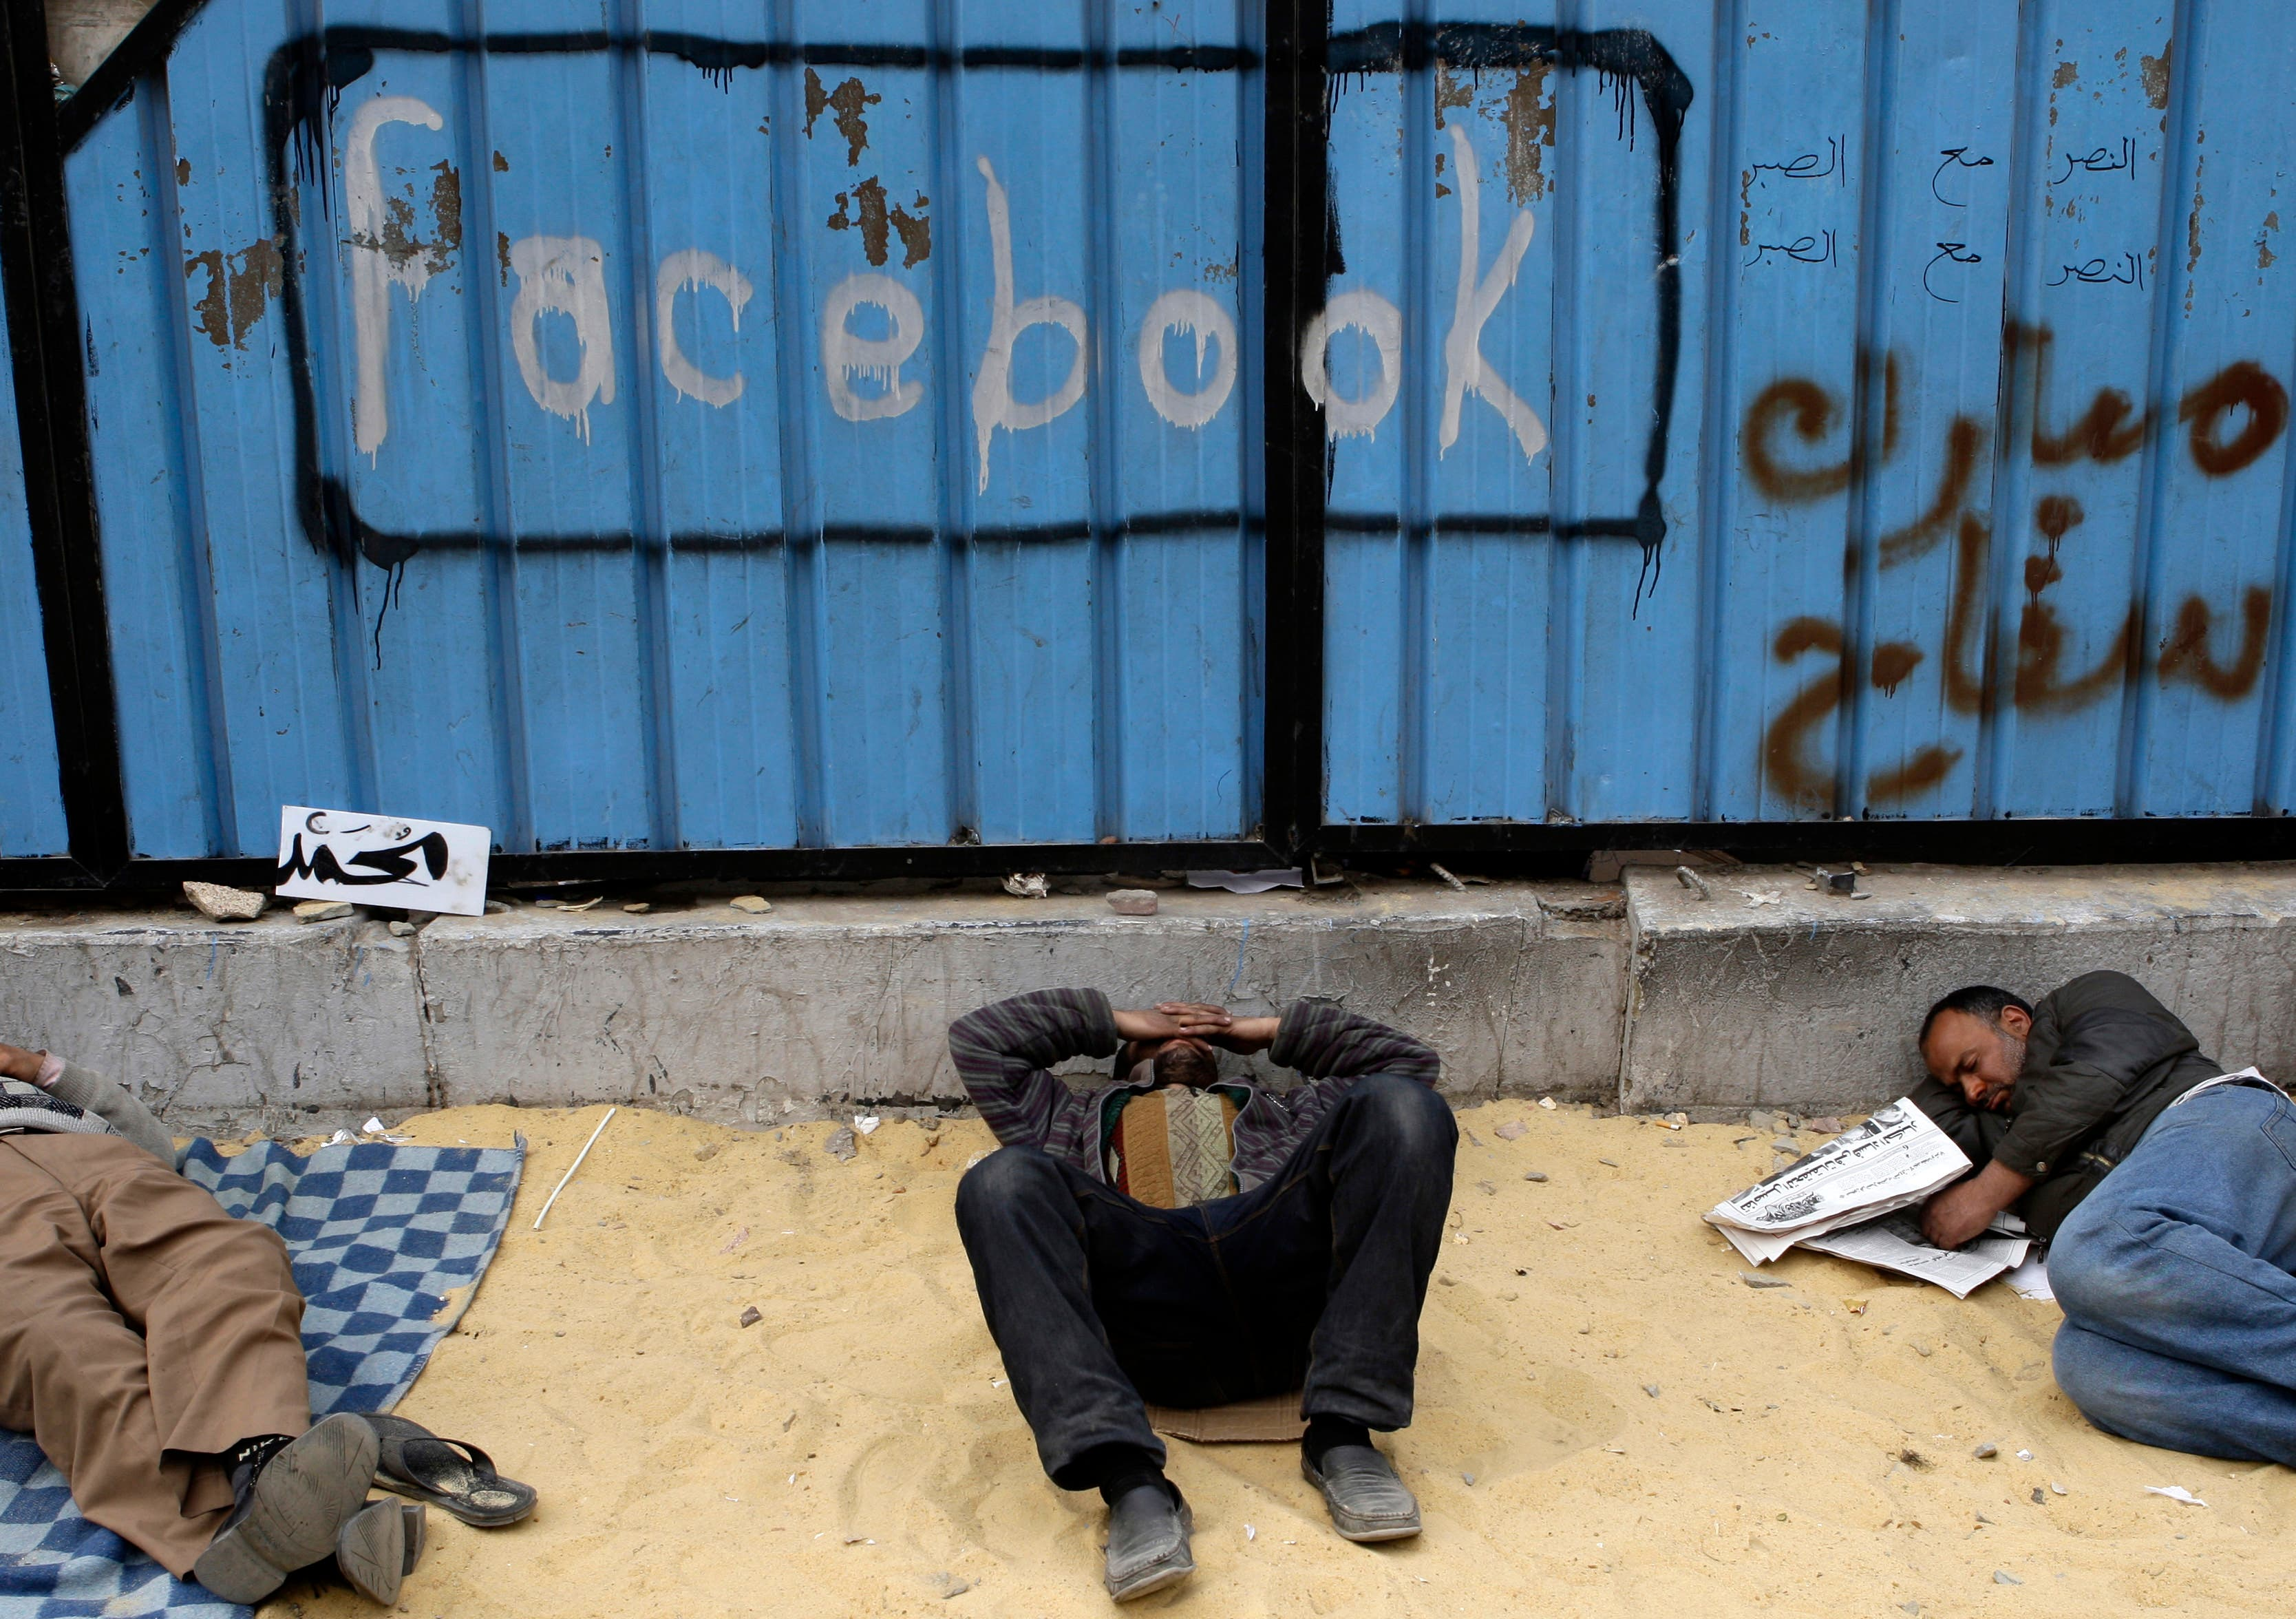 Facebook_BODY1: Opposition supporters rest near graffiti referring to Facebook in Tahrir Square in Cairo on February 5, 2011. (File photo: Reuters)